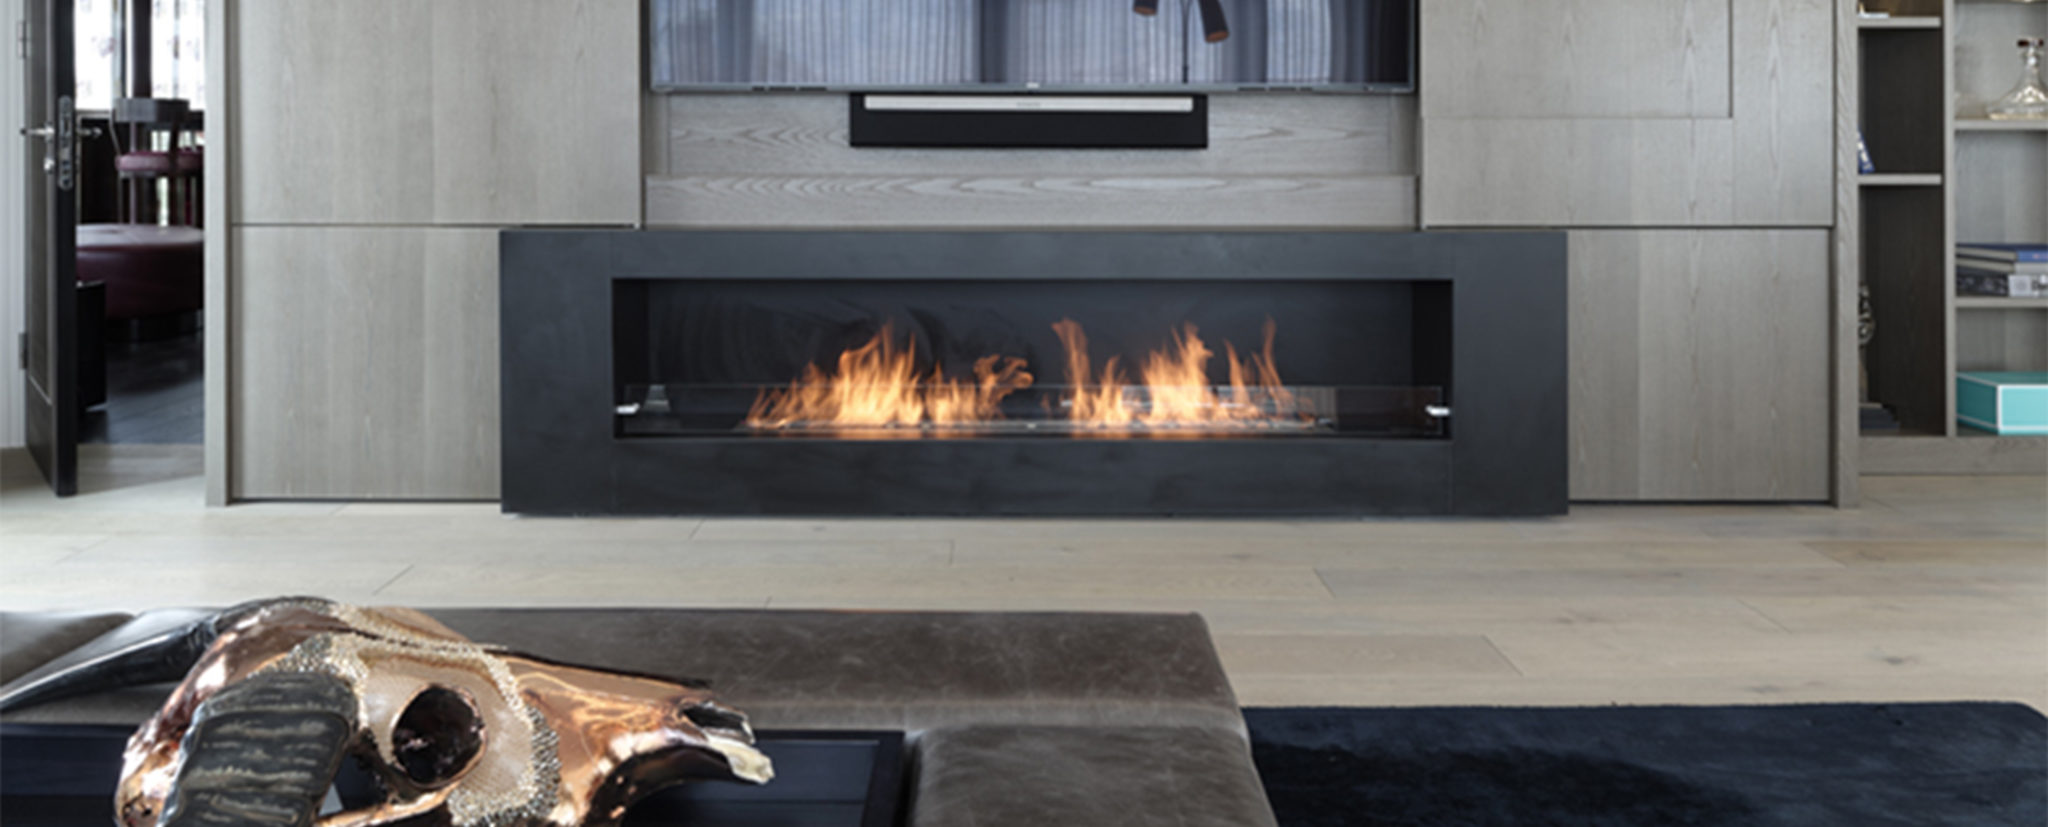 Contemporary built-in media wall and tv cabinet above fireplace for Chelsea Penthouse renovation